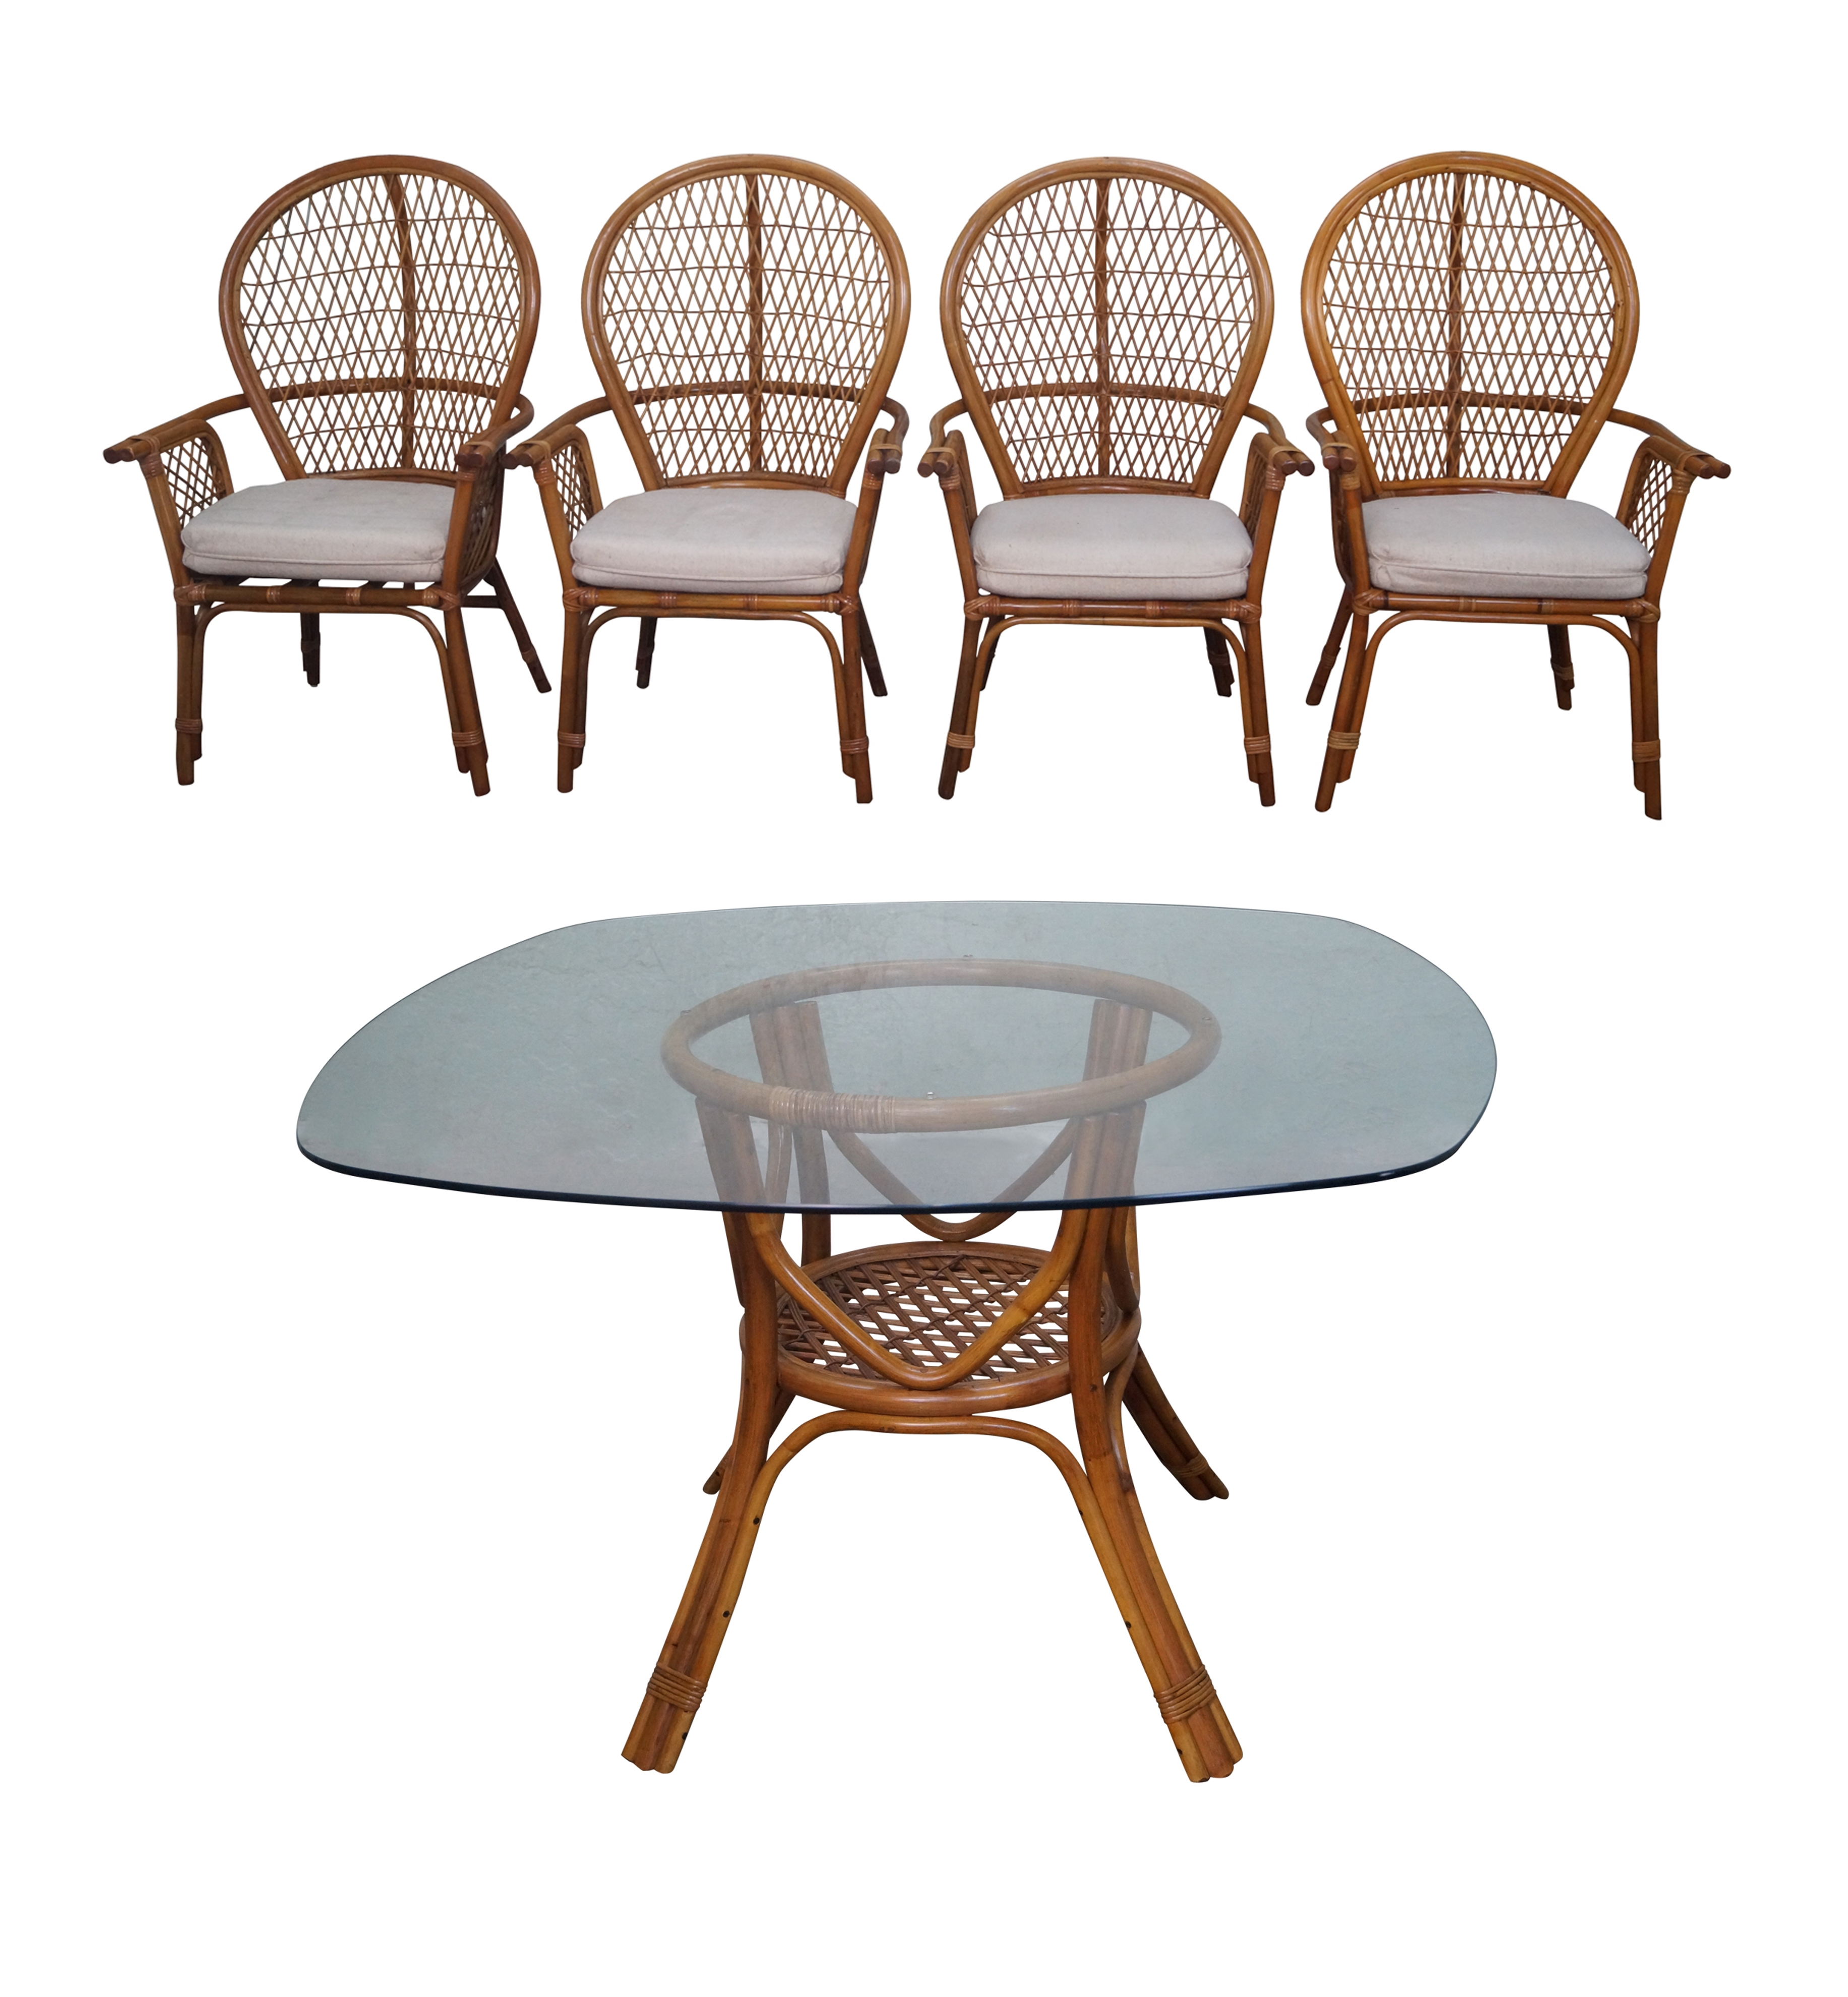 Most Recent Vintage Rattan Glass Top Dining Table & Chair Set Age/country Of Inside Wicker And Glass Dining Tables (View 9 of 25)